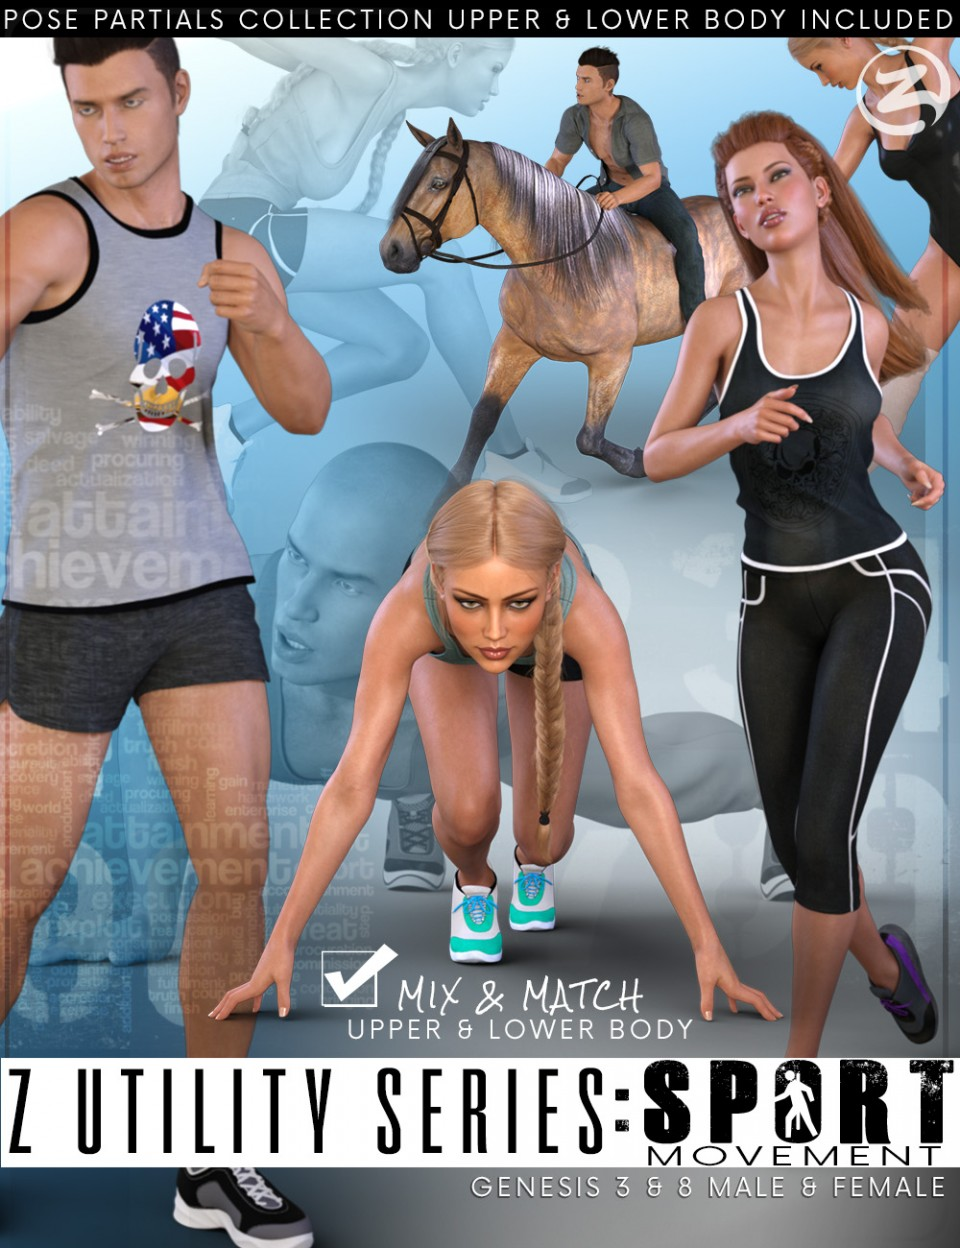 Z Utility Series Sport: Movement – Poses and Partials for Genesis 3 and 8_DAZ3D下载站